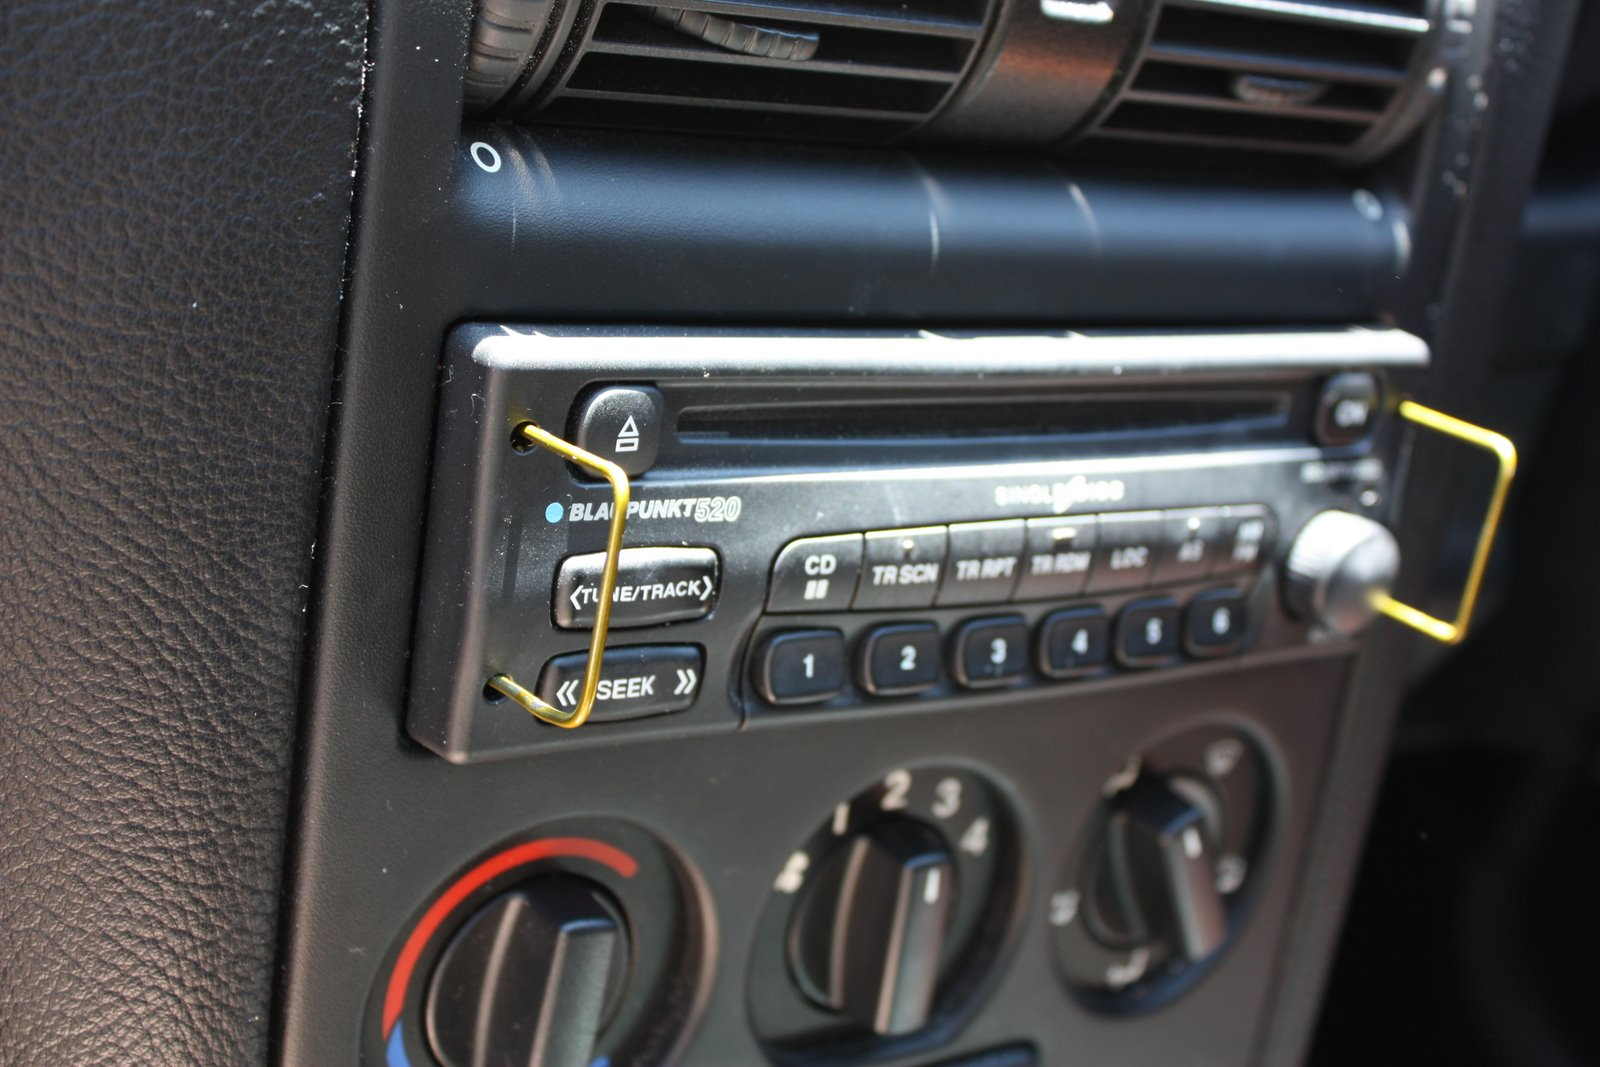 Remove a blaupunkt 520 car stereo head unit from a 2005 astra step 2 makeshift stereo removal keys cheapraybanclubmaster